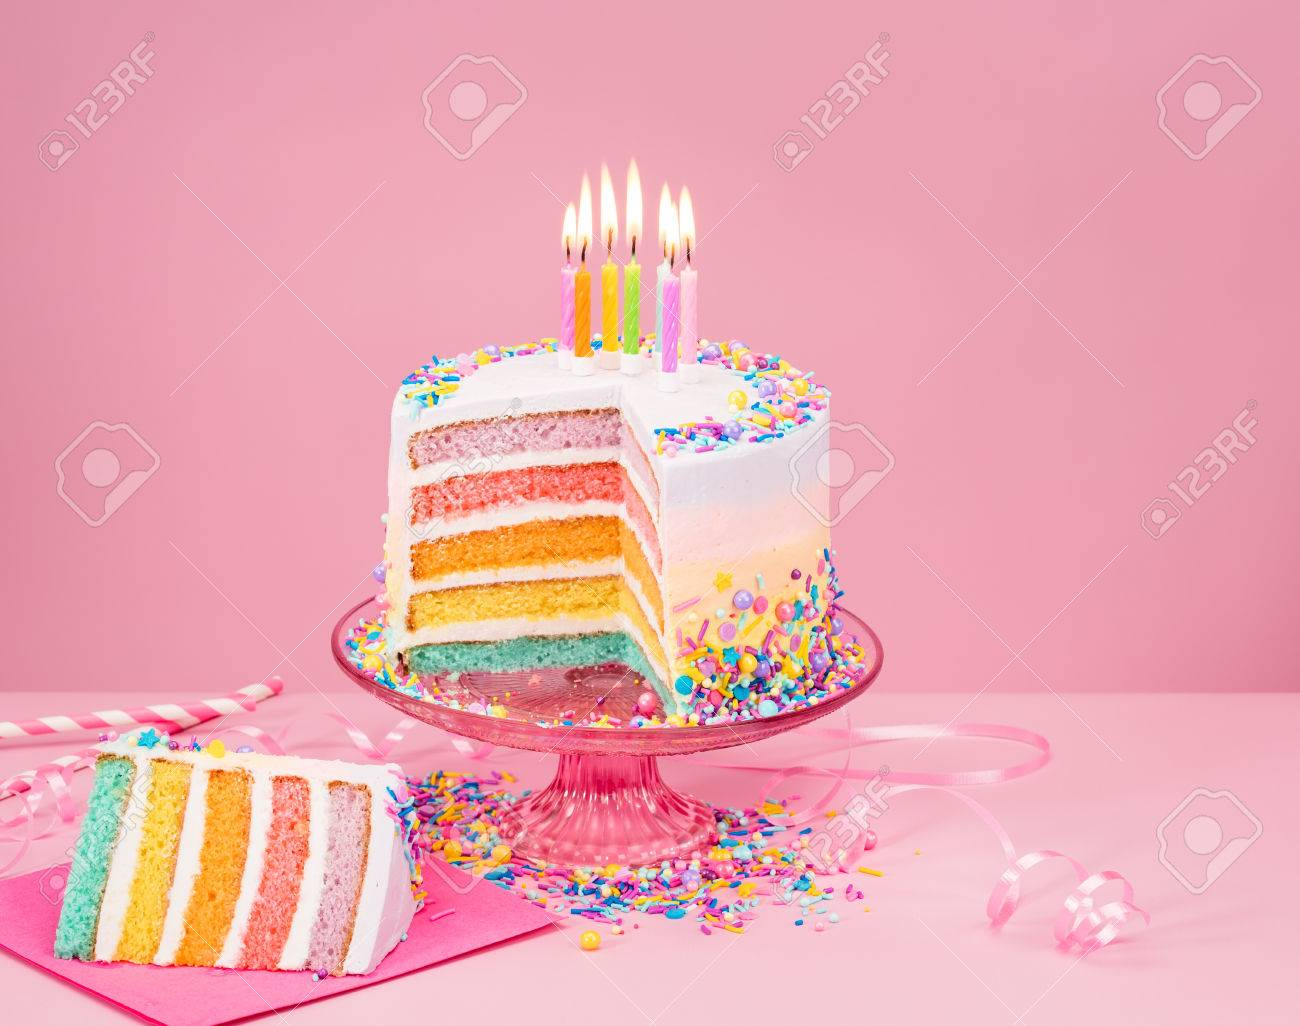 Colorful Rainbow Birthday Cake And With Candles Over A Pink